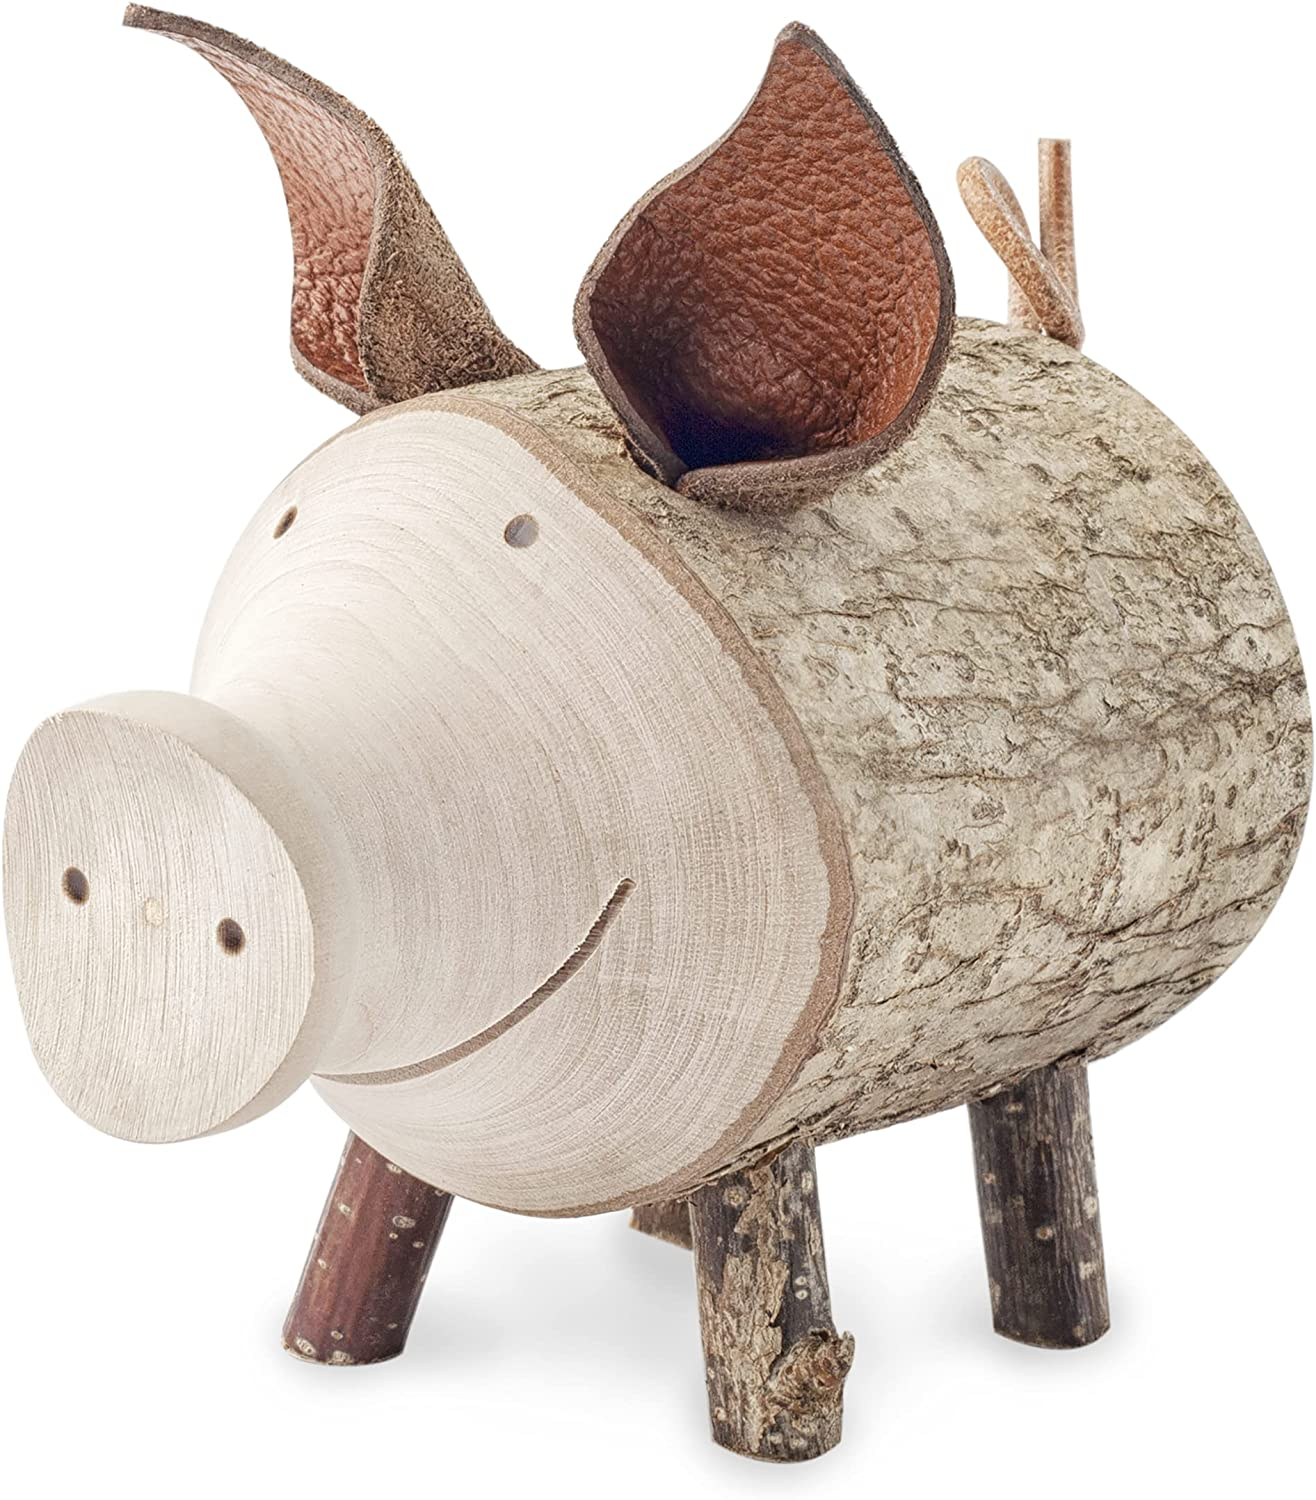 Forest Decor Pig Figurine, Wood Pig Decor, Collectible Pig Gifts for Pig Lovers, Handmade Pig Stuff for Room Decorations, Cute Decor, Small Animal Figurines (4.5